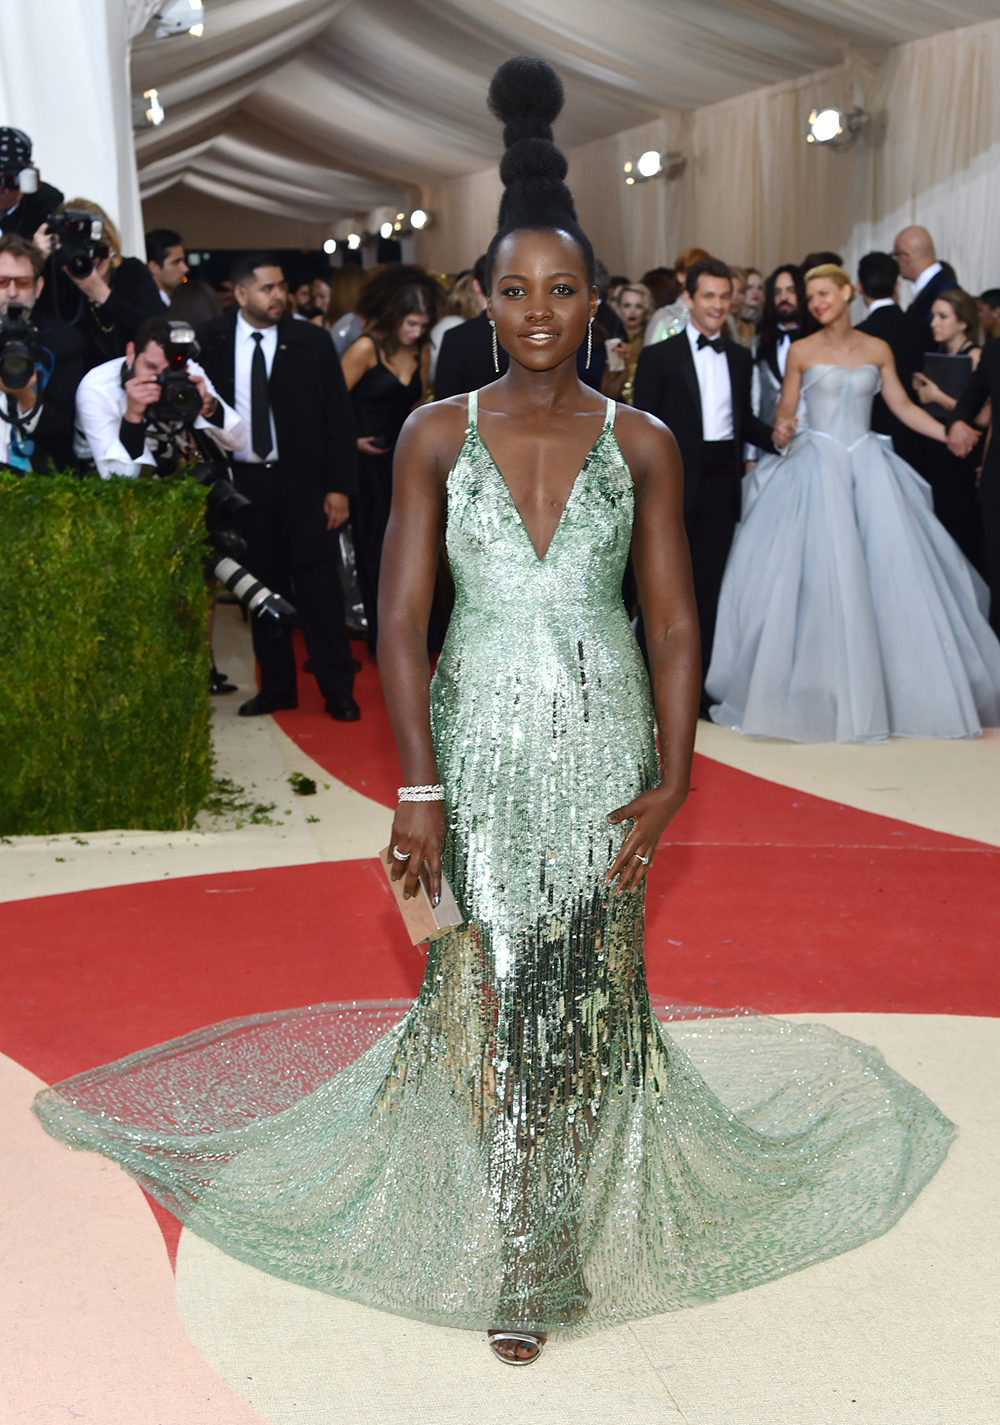 Mandatory Credit: Photo by Andrew H. Walker/REX/Shutterstock (5669035me) Lupita Nyong'o The Metropolitan Museum of Art's COSTUME INSTITUTE Benefit Celebrating the Opening of Manus x Machina: Fashion in an Age of Technology, Arrivals, The Metropolitan Museum of Art, NYC, New York, America - 02 May 2016